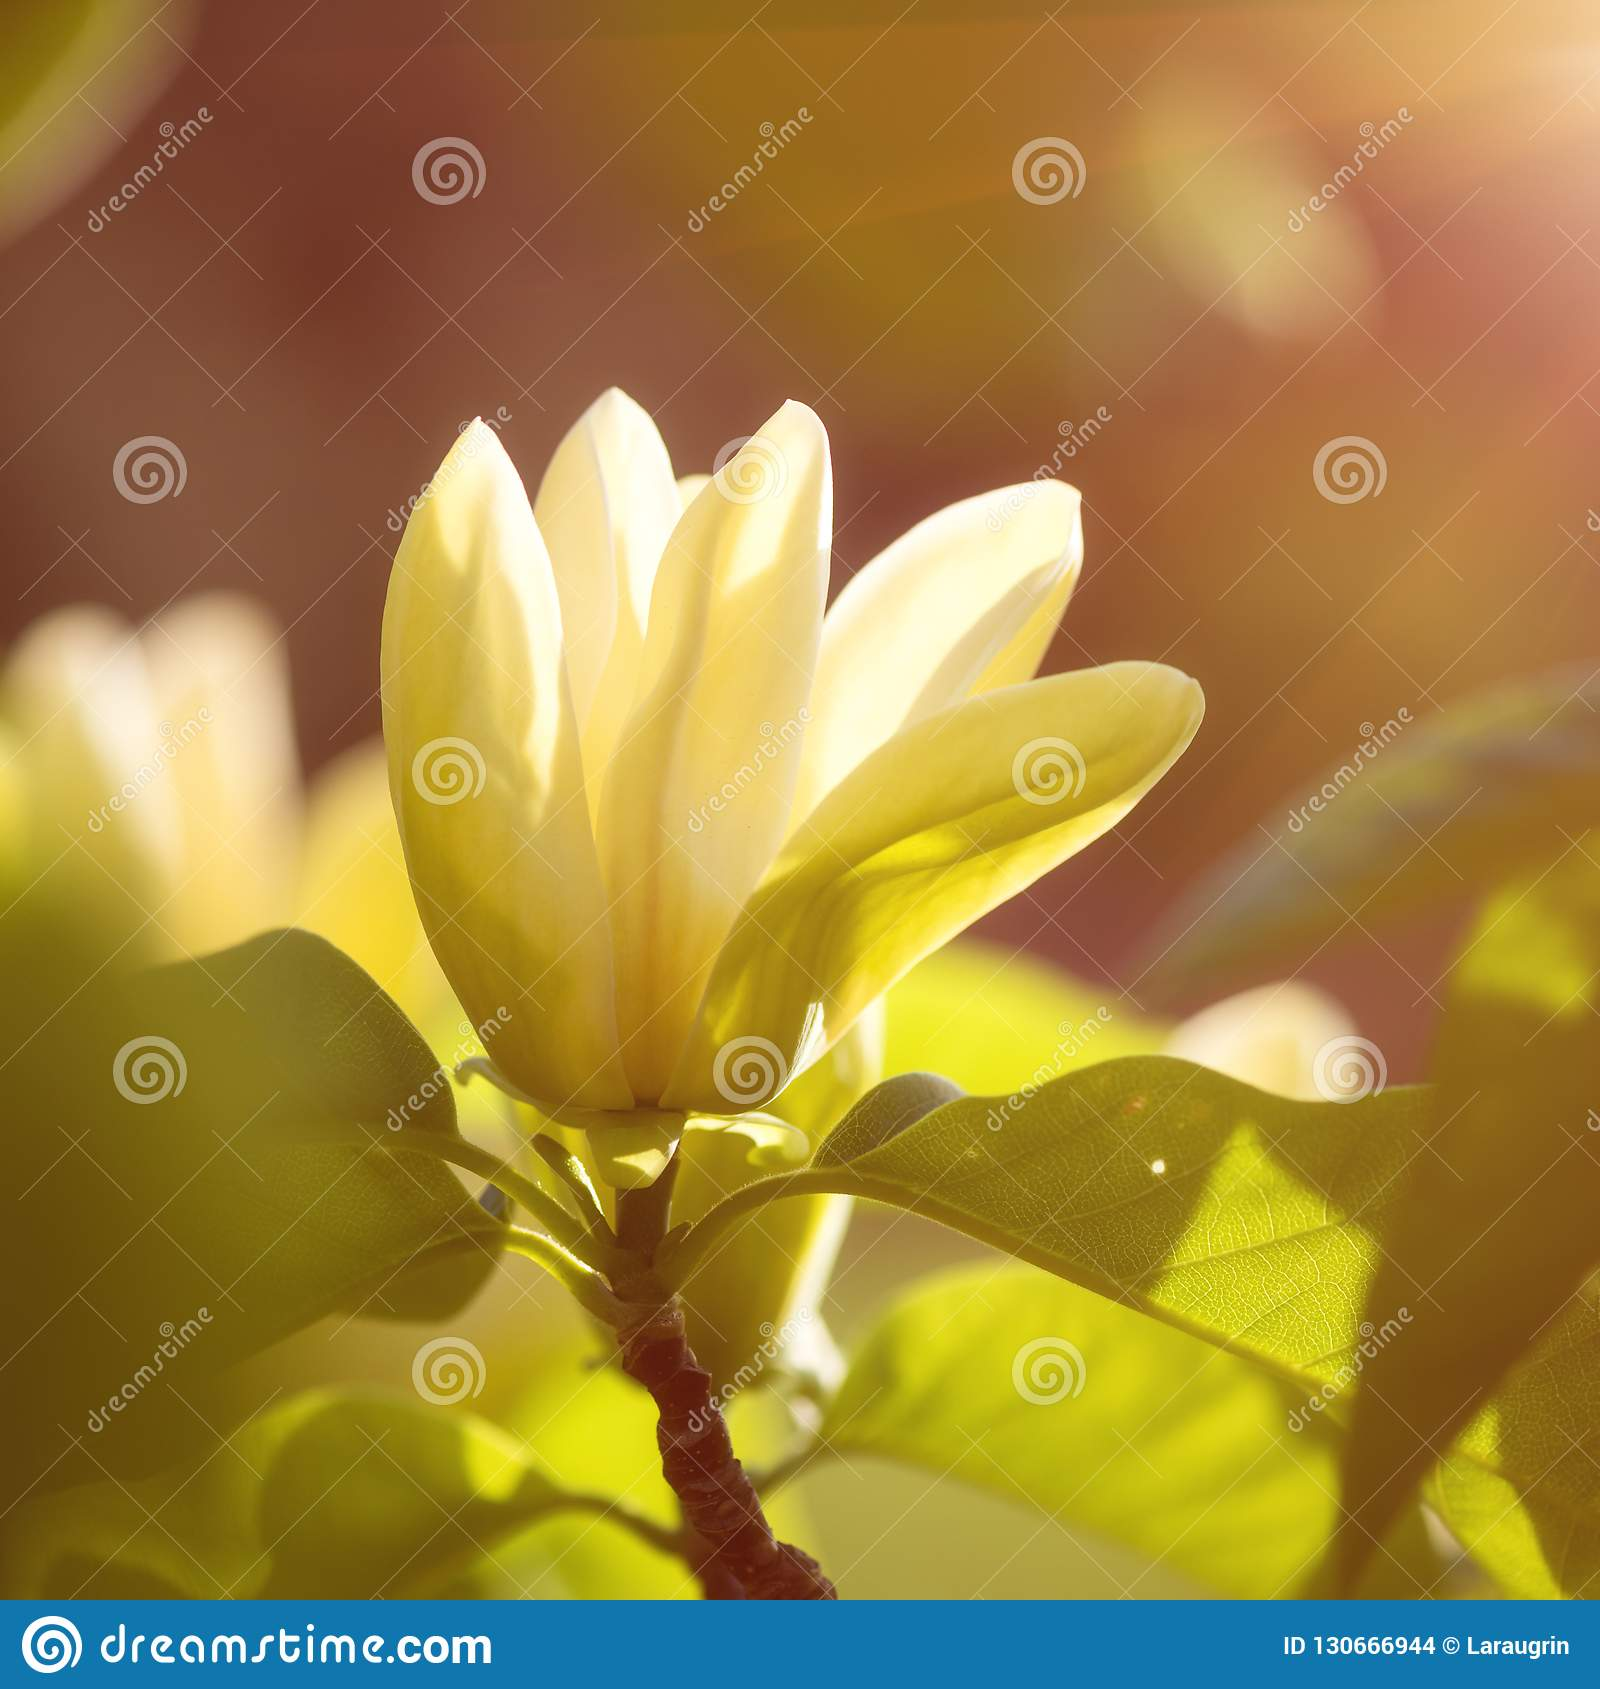 Blossoming Yellow Magnolia Flower In The Garden Macro Image